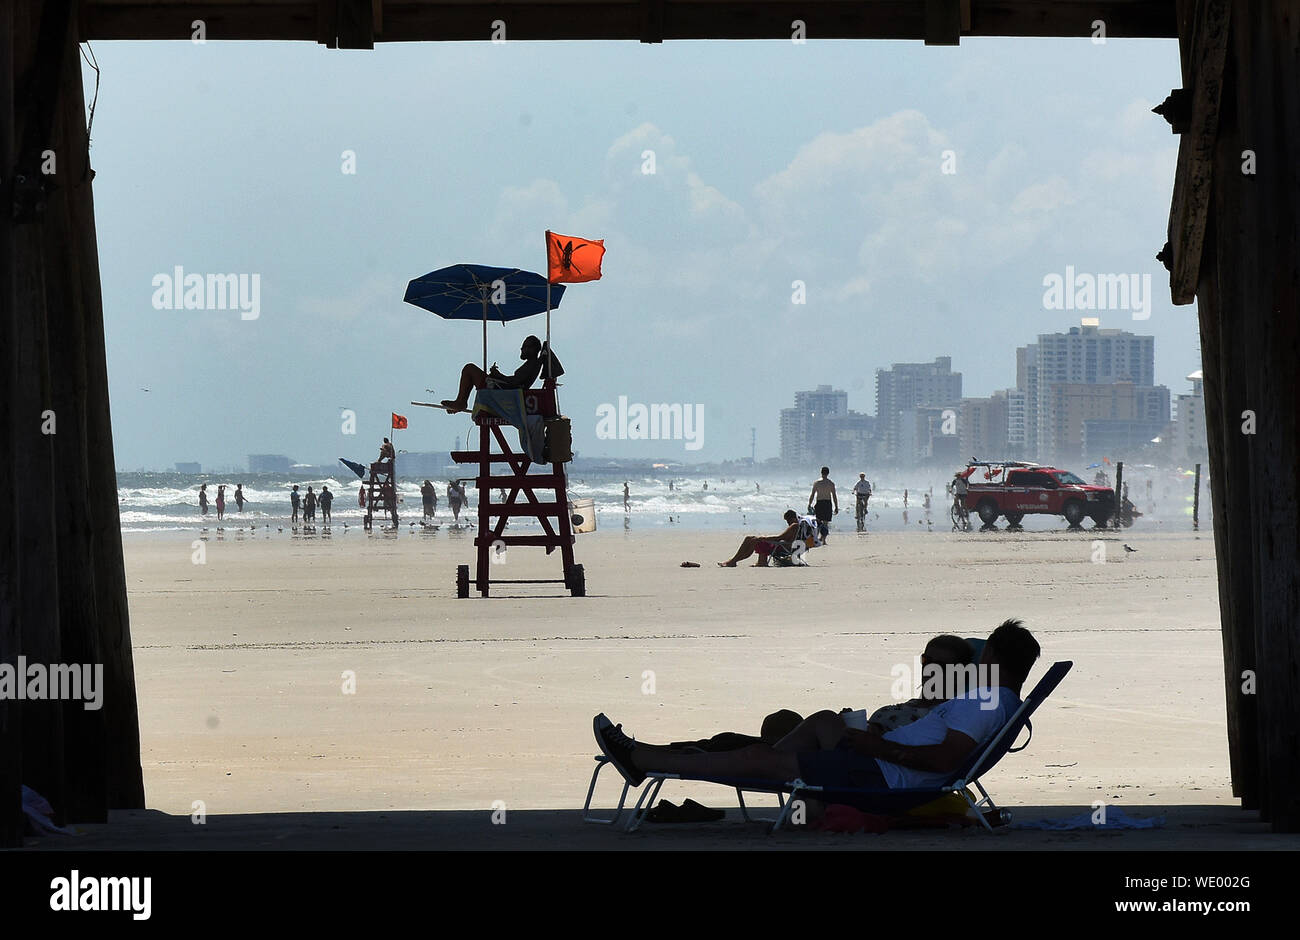 Daytona Beach, United States. 29th Aug, 2019. People relax at the shade under the Daytona Beach pier several days ahead of the Hurricane Dorian which is expected to become a Category 4 hurricane before making landfall in Florida on Labor Day. Credit: SOPA Images Limited/Alamy Live News Stock Photo